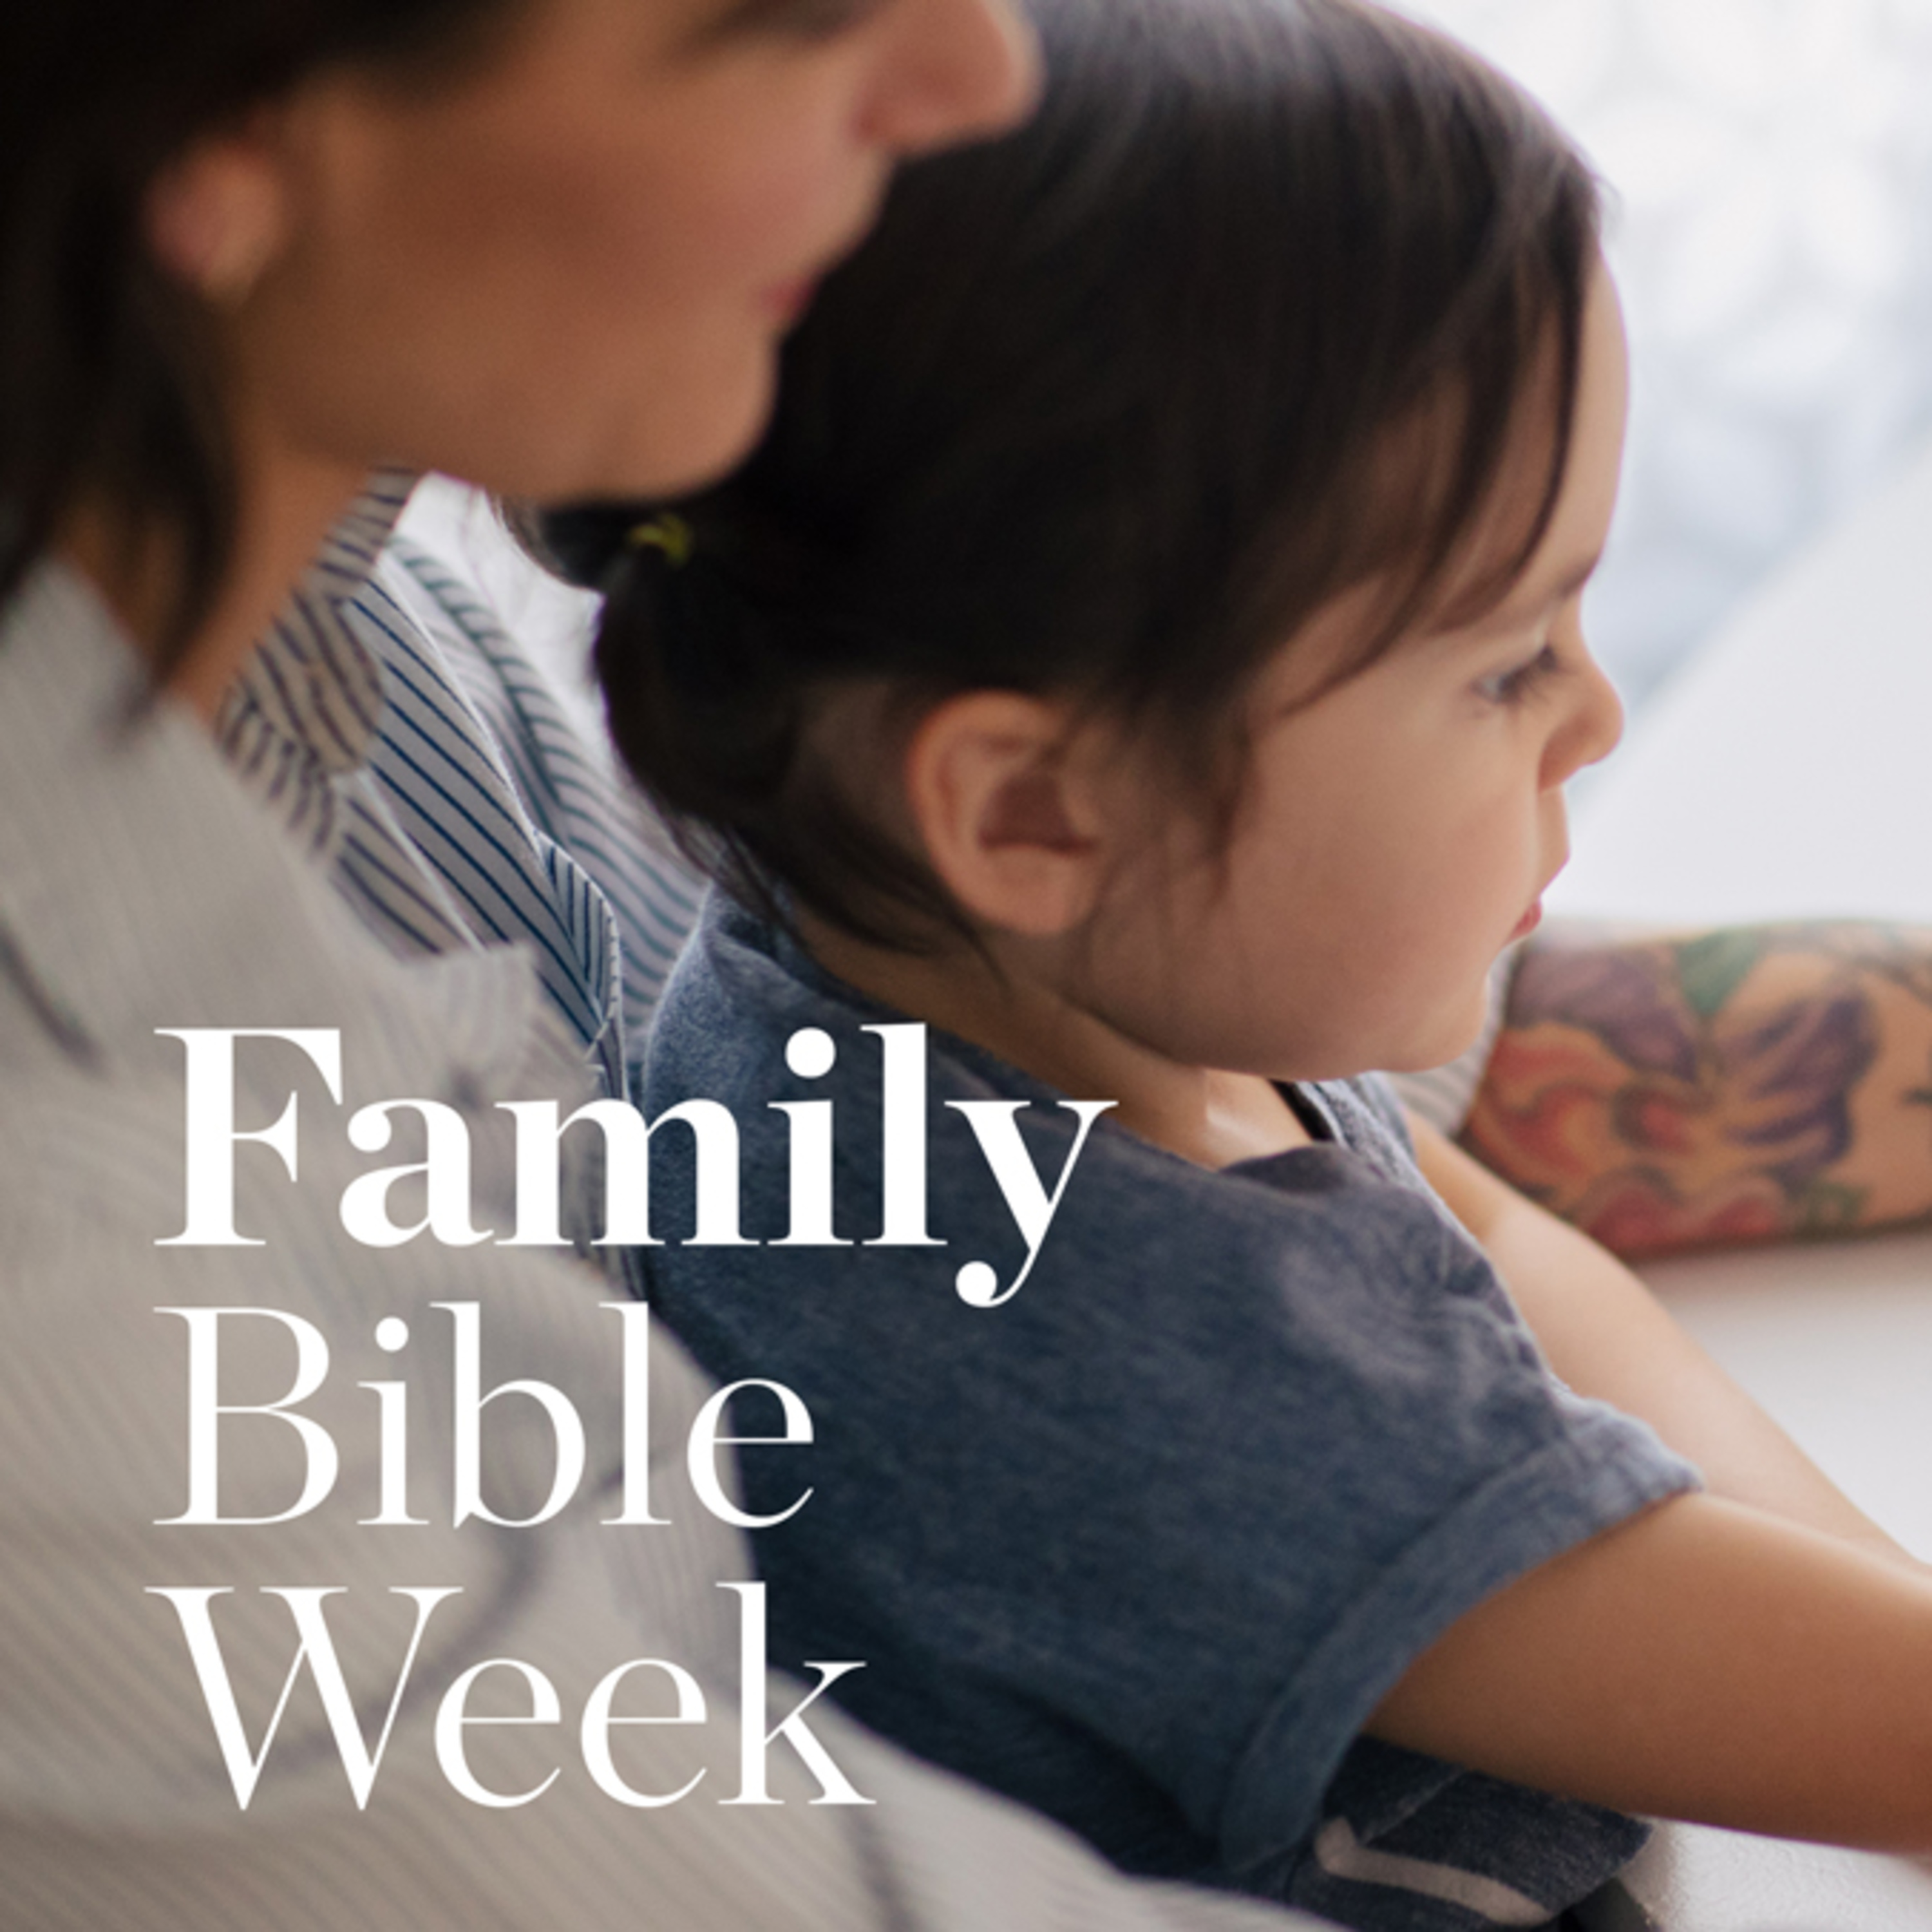 Family Bible Week - Day 2